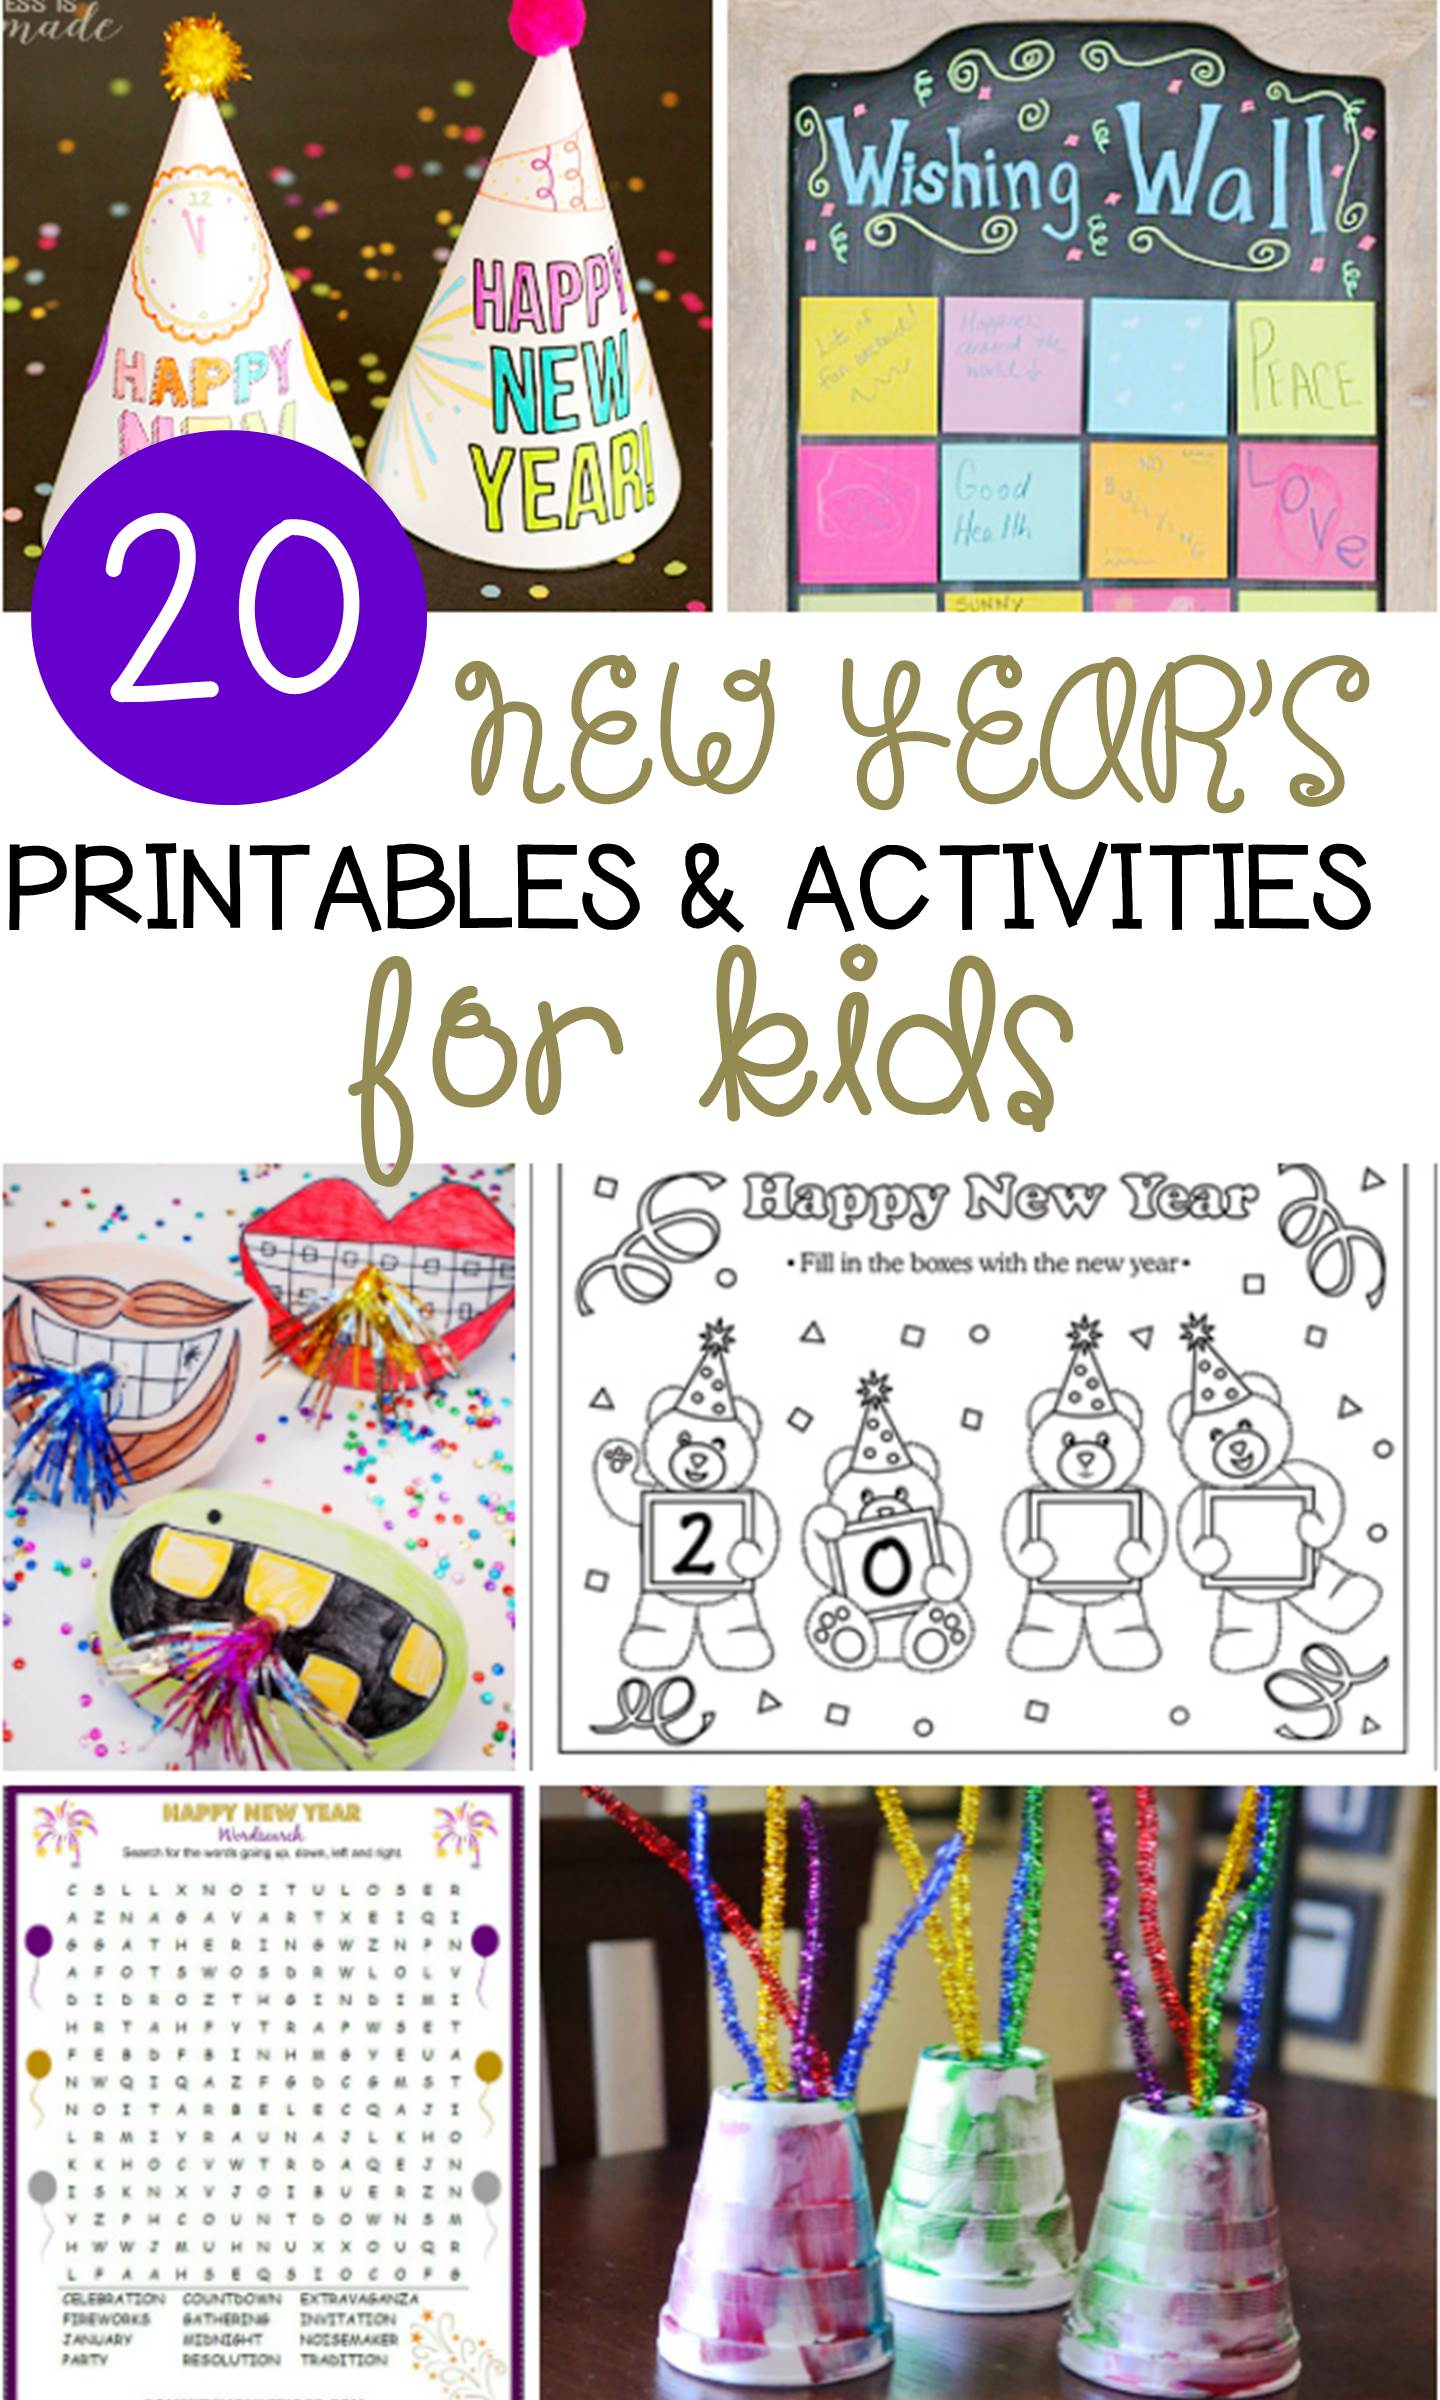 These 20 New Year's activities for kids are great for the classroom or home! They are so much fun for younger kids to ring in the new year!